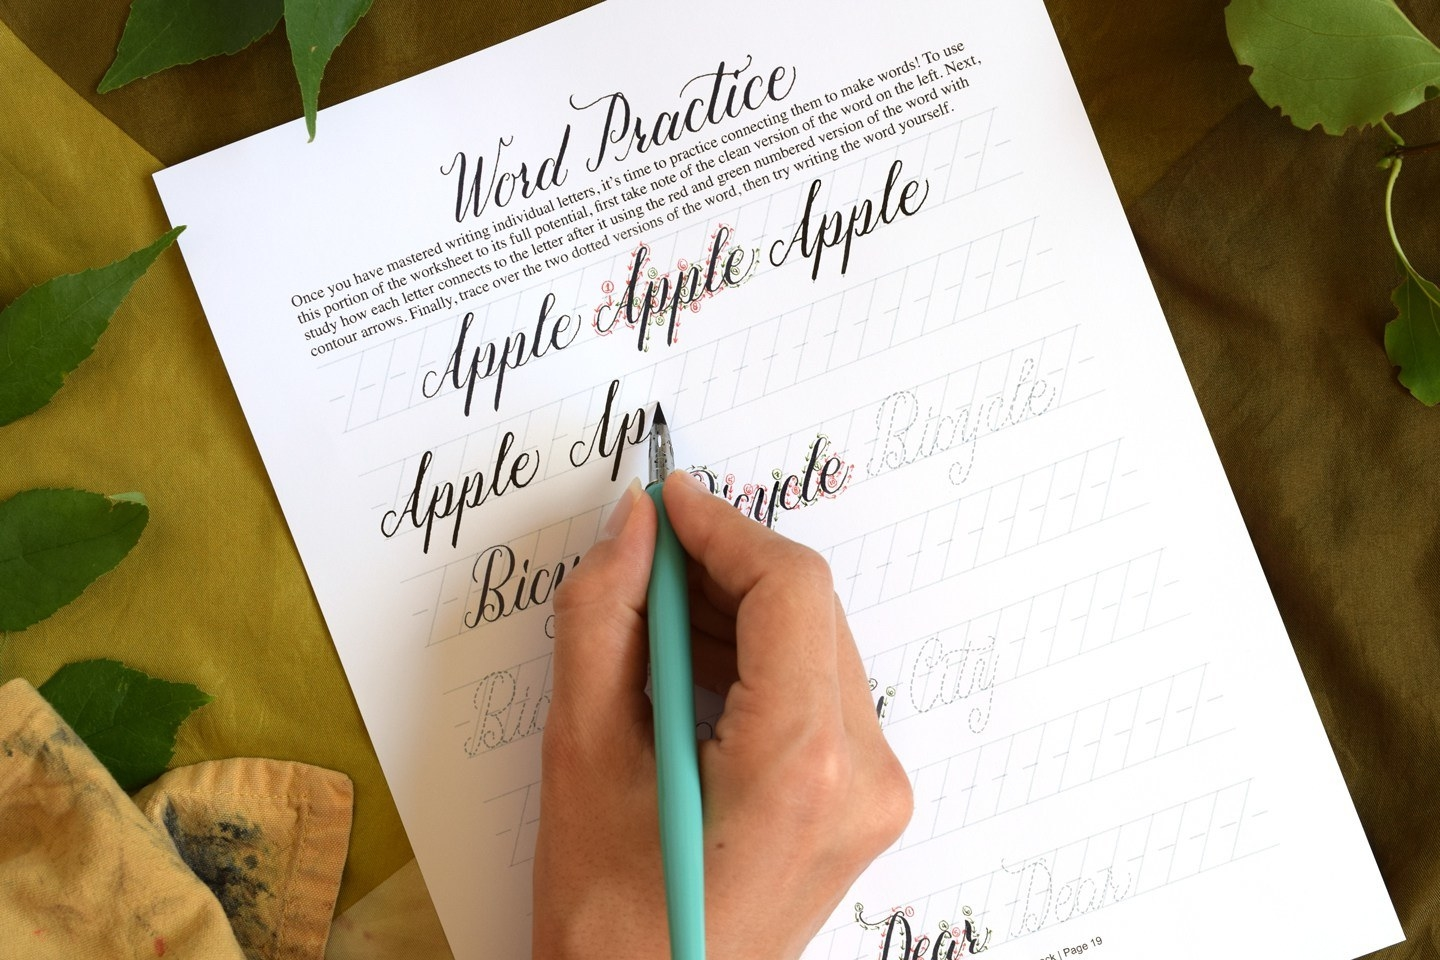 Tips for anyone who wants to learn calligraphy and hand lettering